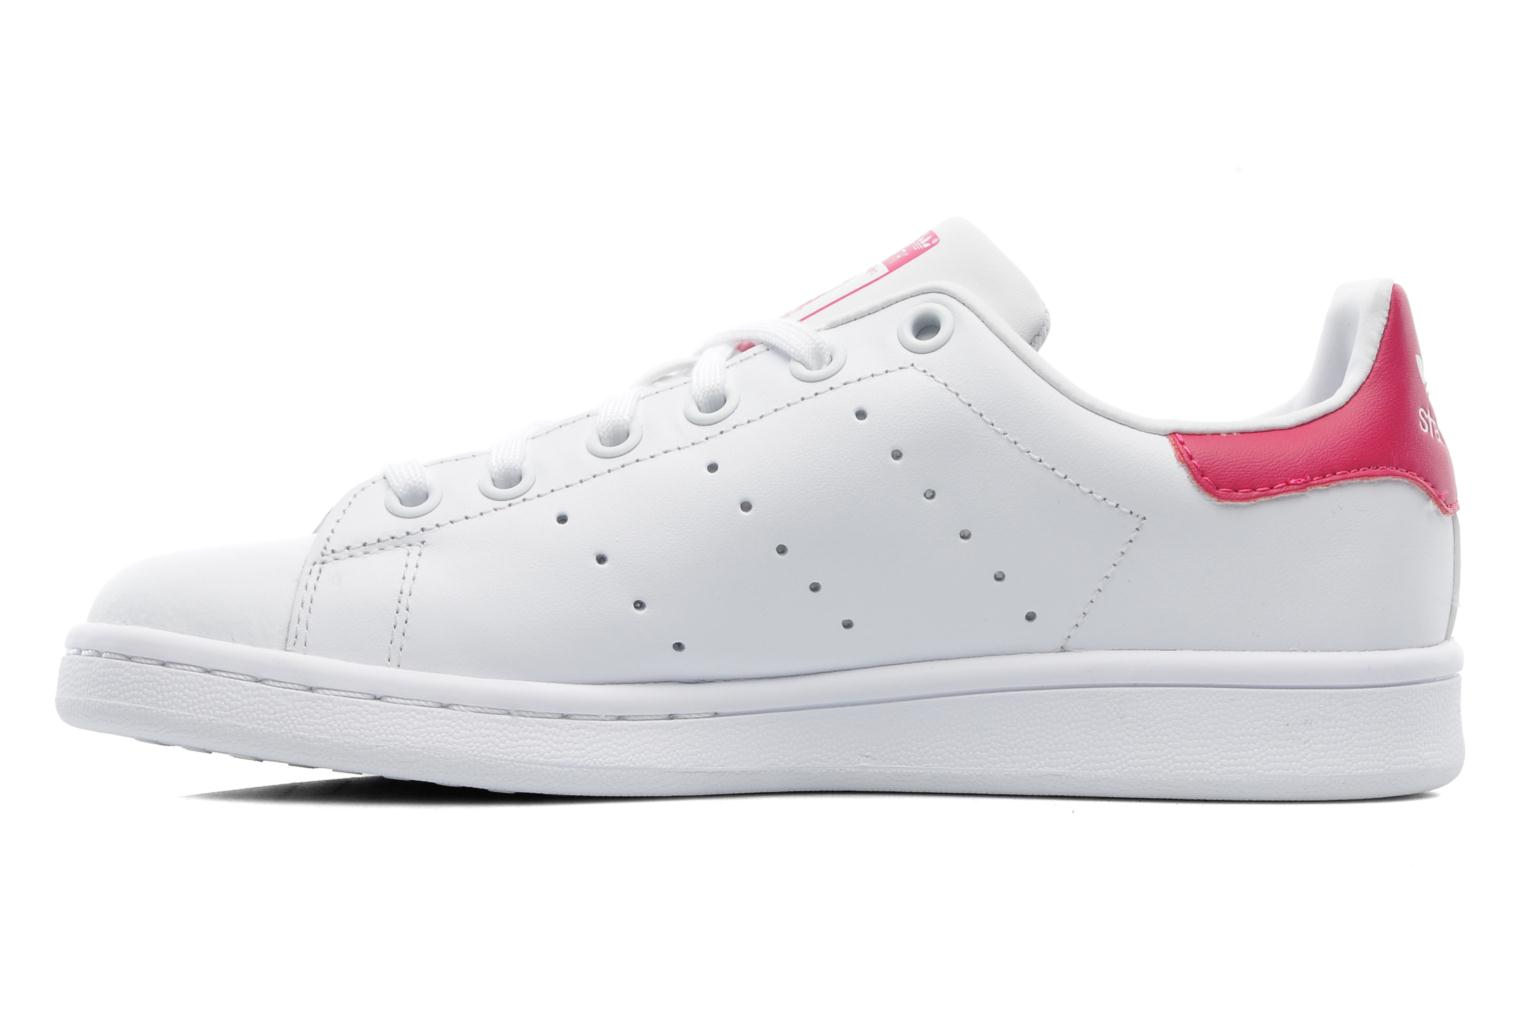 Stan Smith Adidas Femme Rose